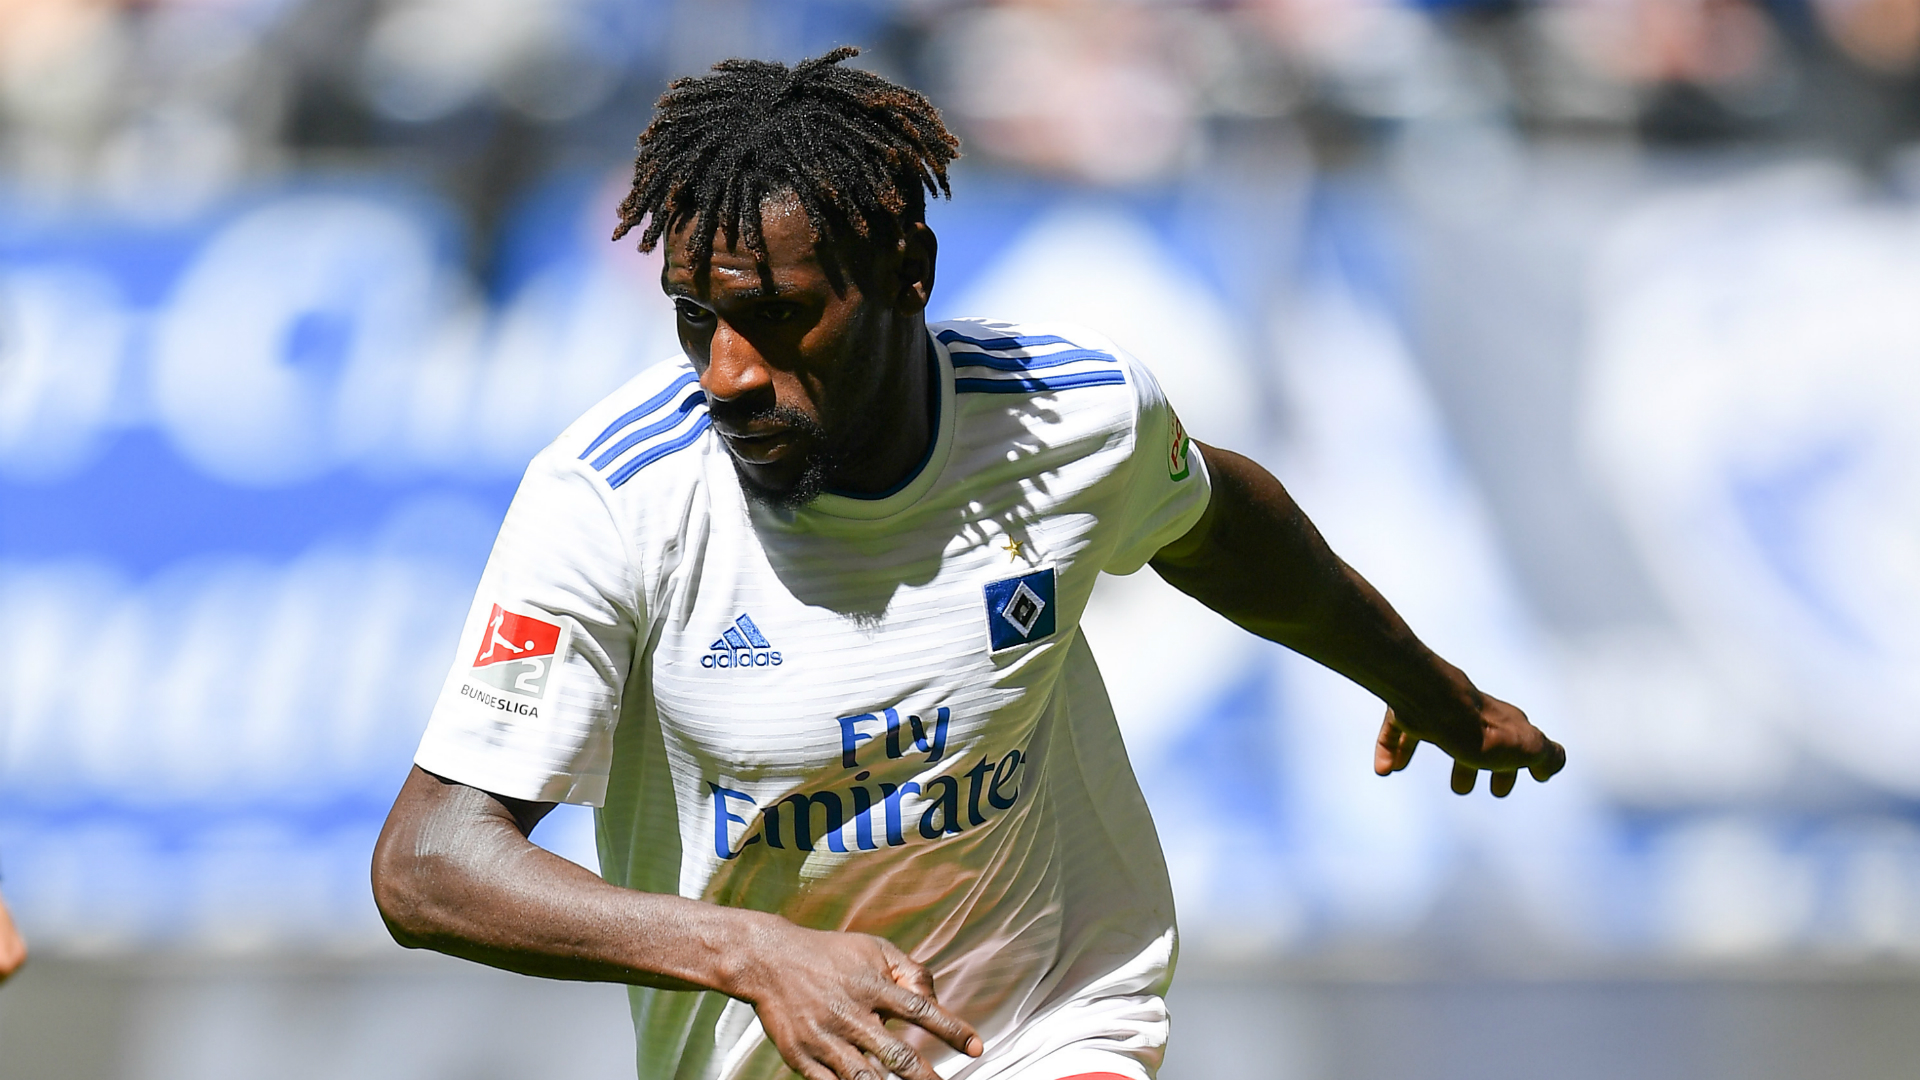 Local prosecutors are still investigating SV Hamburg player Bakaray Jatta on suspicion of having lied about his identity when he fled from Gambia to Germany. The 22-year-old Jatta is suspected to be Bakary Daffeh, a footballer who is two years older. The player has dismissed the allegations, and Hamburg and Bremen authorities ended a probe […]